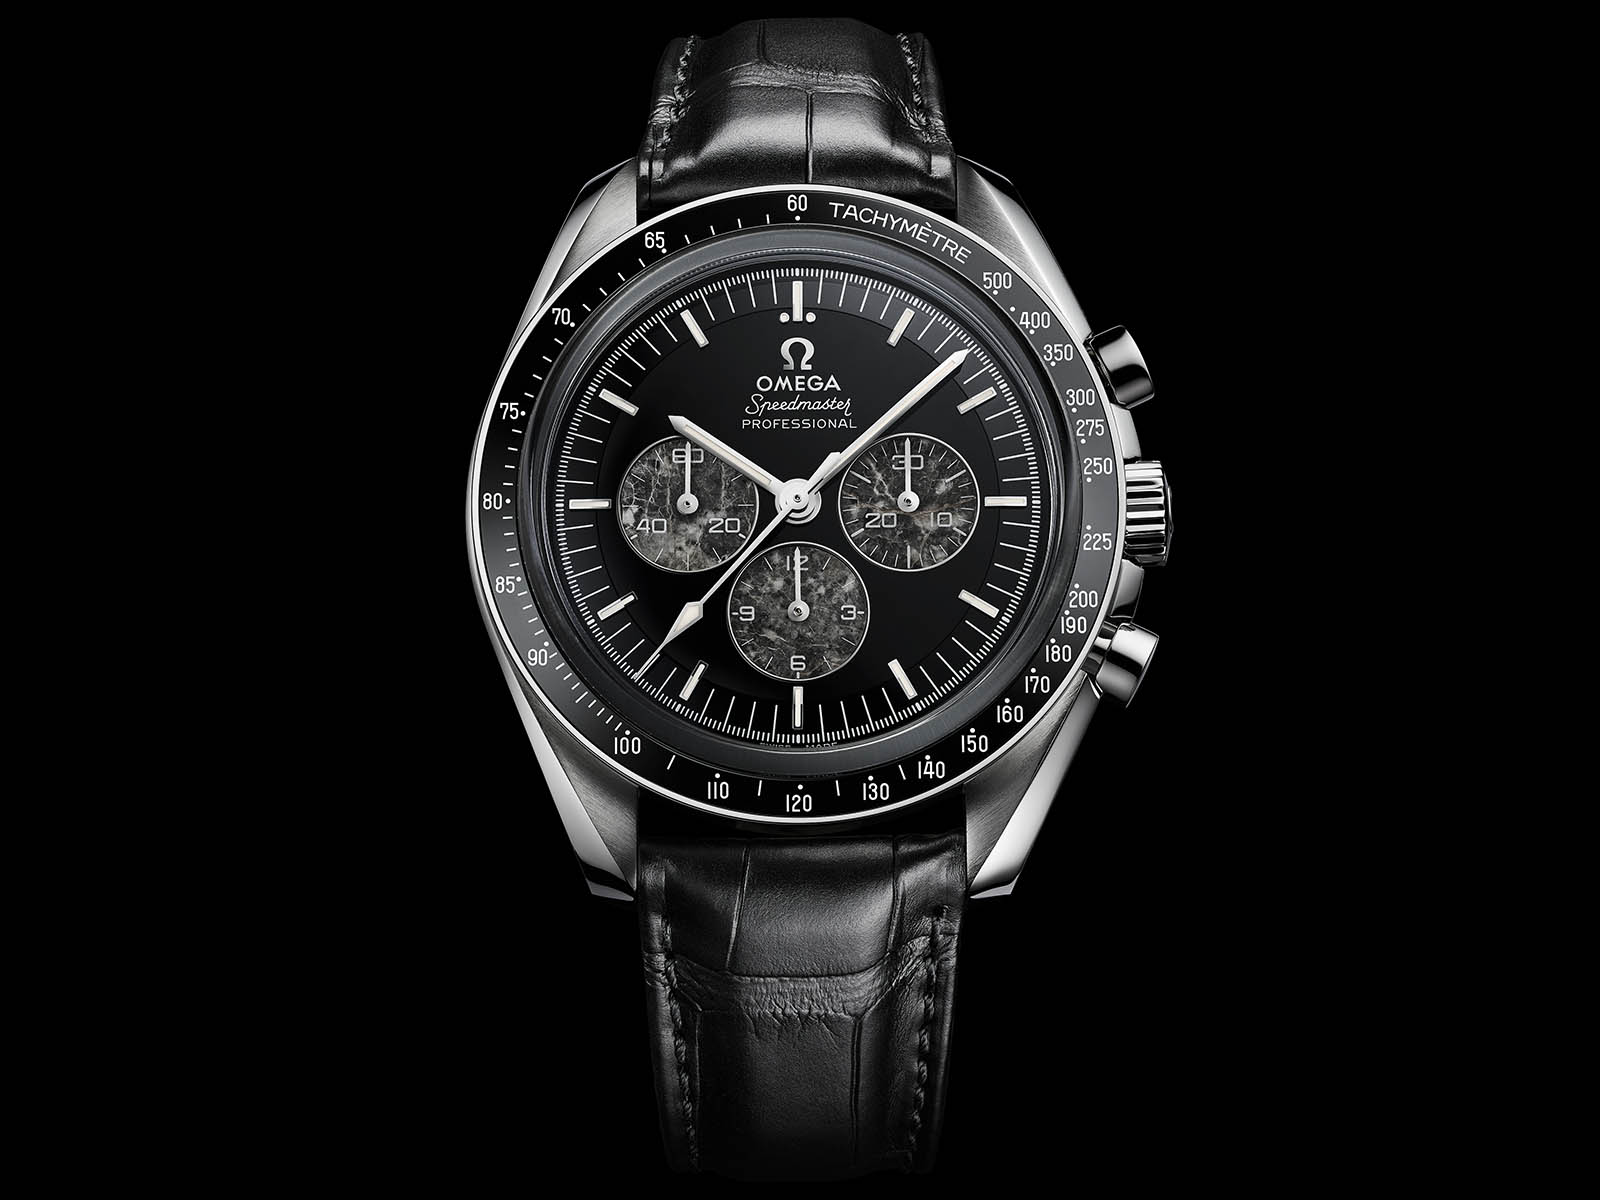 311-93-42-30-99-001-omega-speedmaster-professional-moonwatch-321-platinum-2.jpg